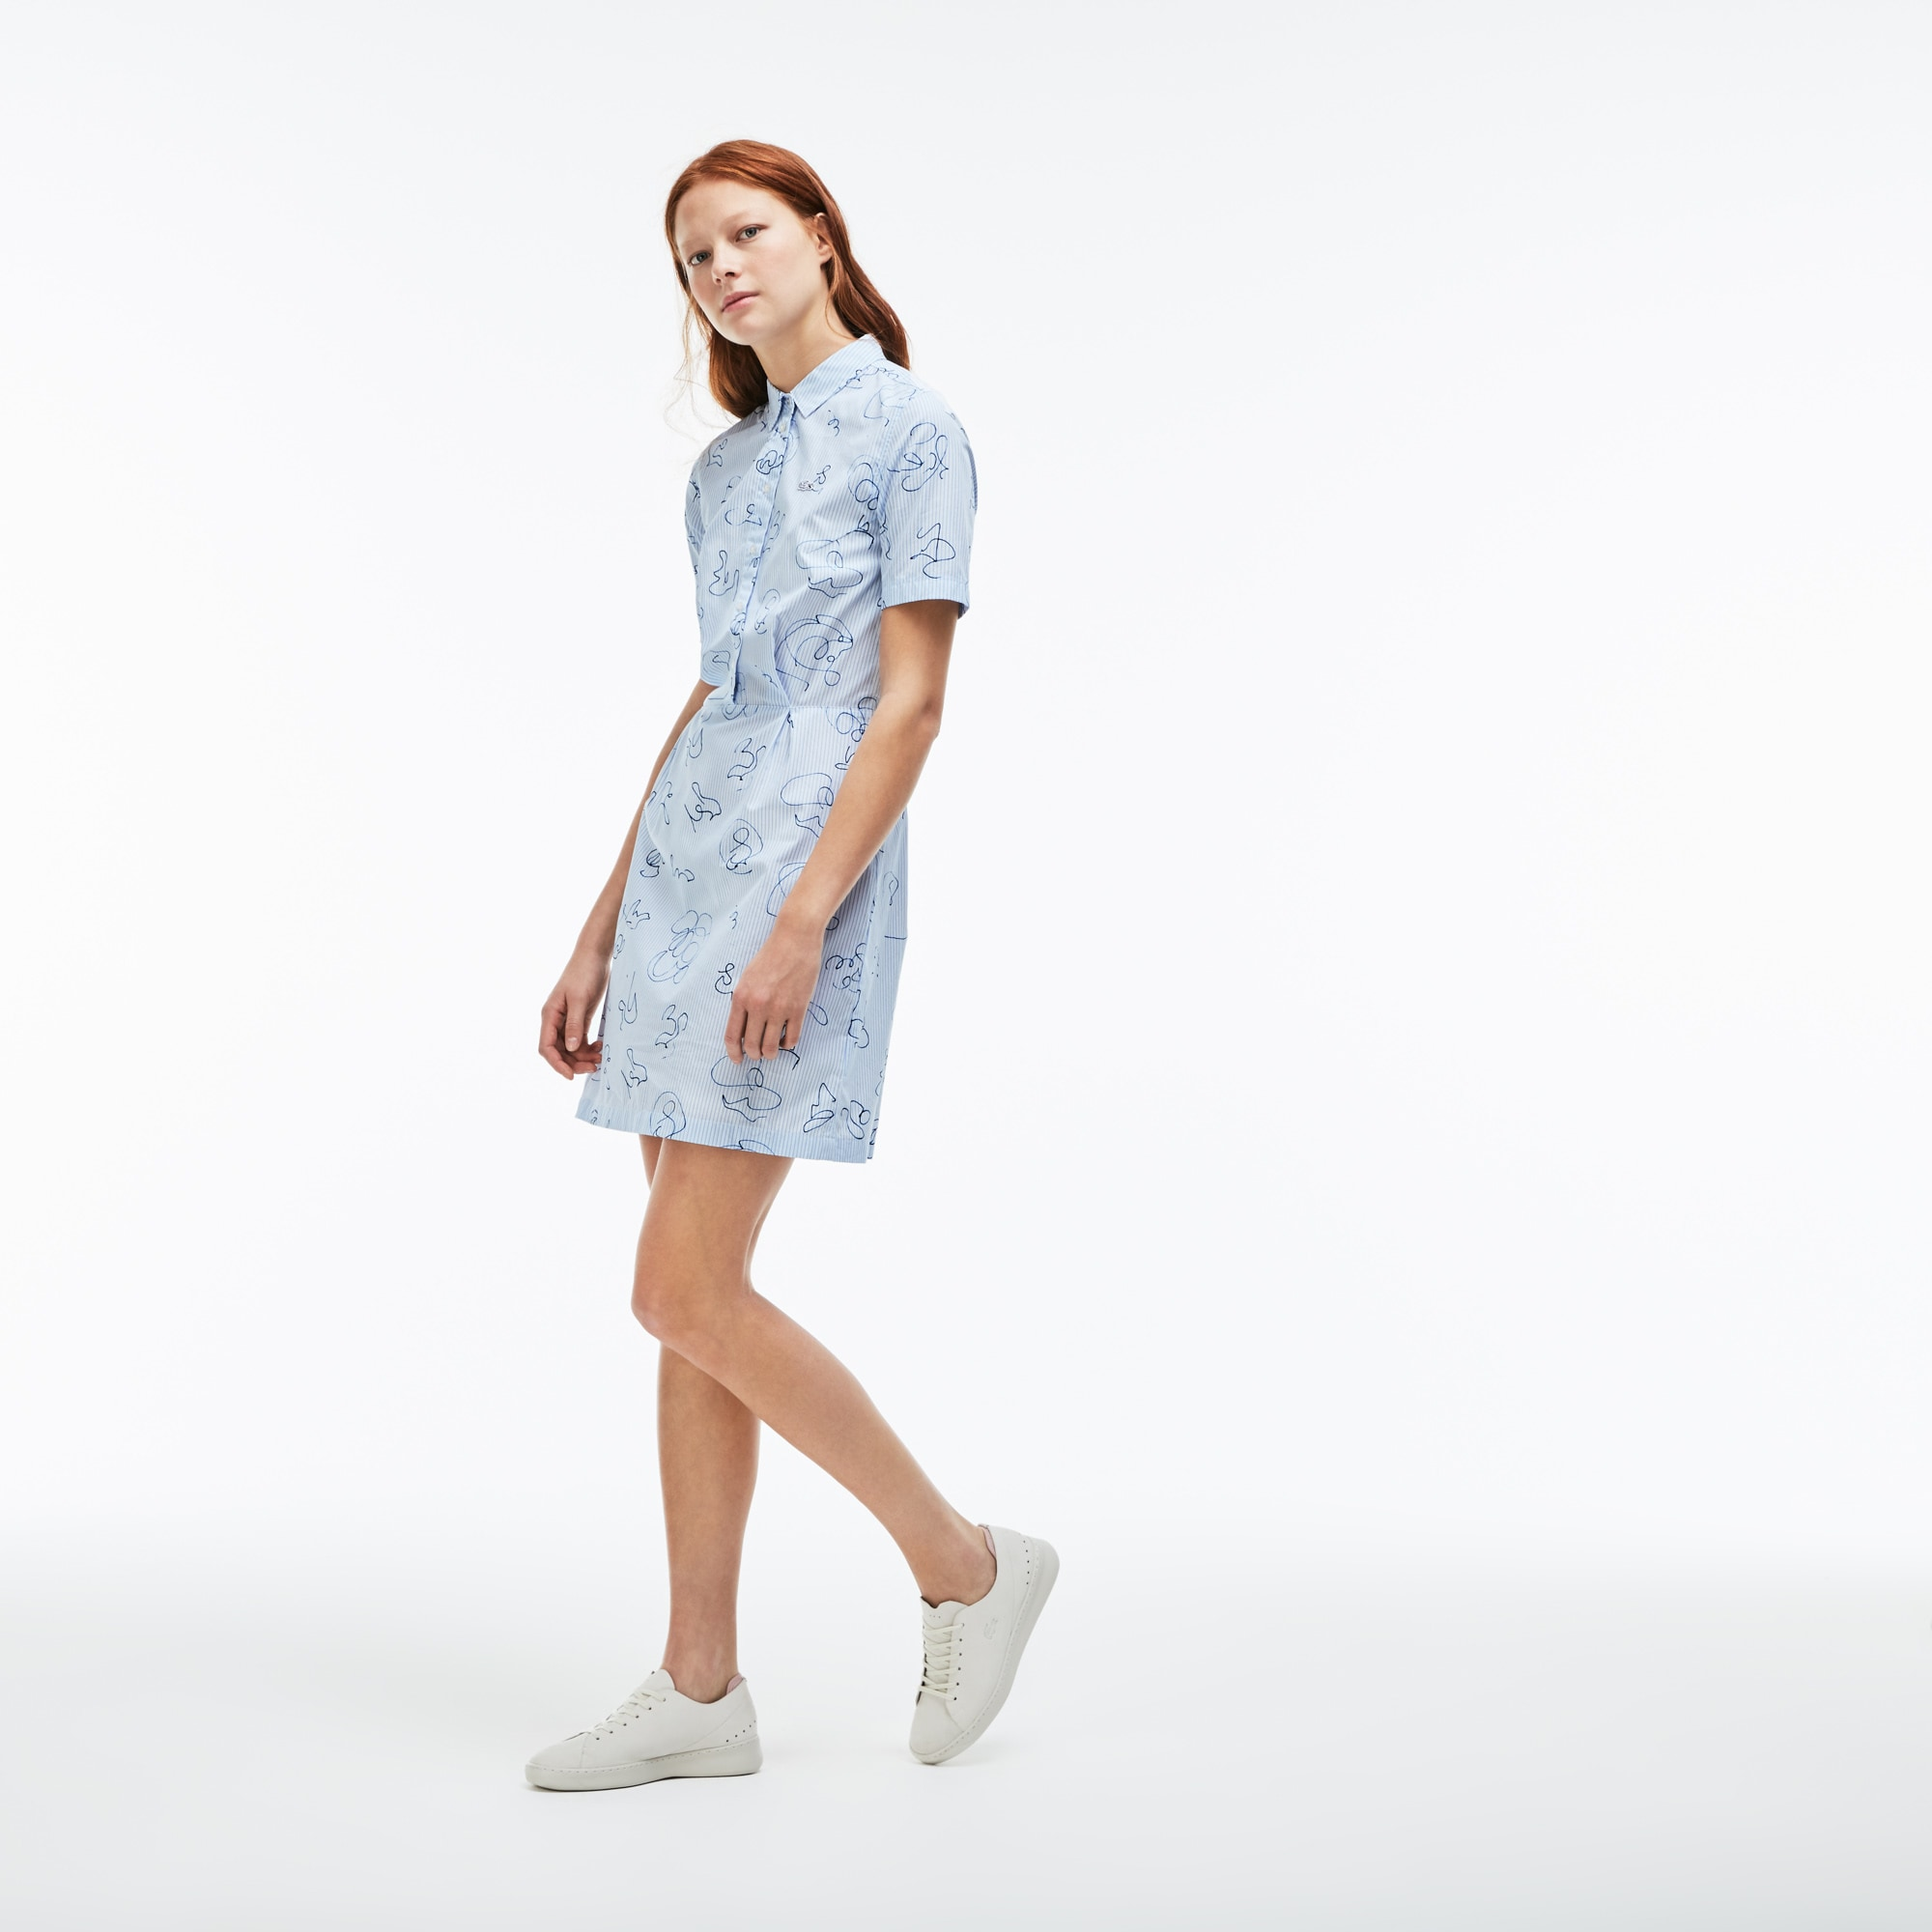 5c6fb8ca7 Women's Lacoste LIVE Striped Print Cotton Poplin Shirt Dress | LACOSTE